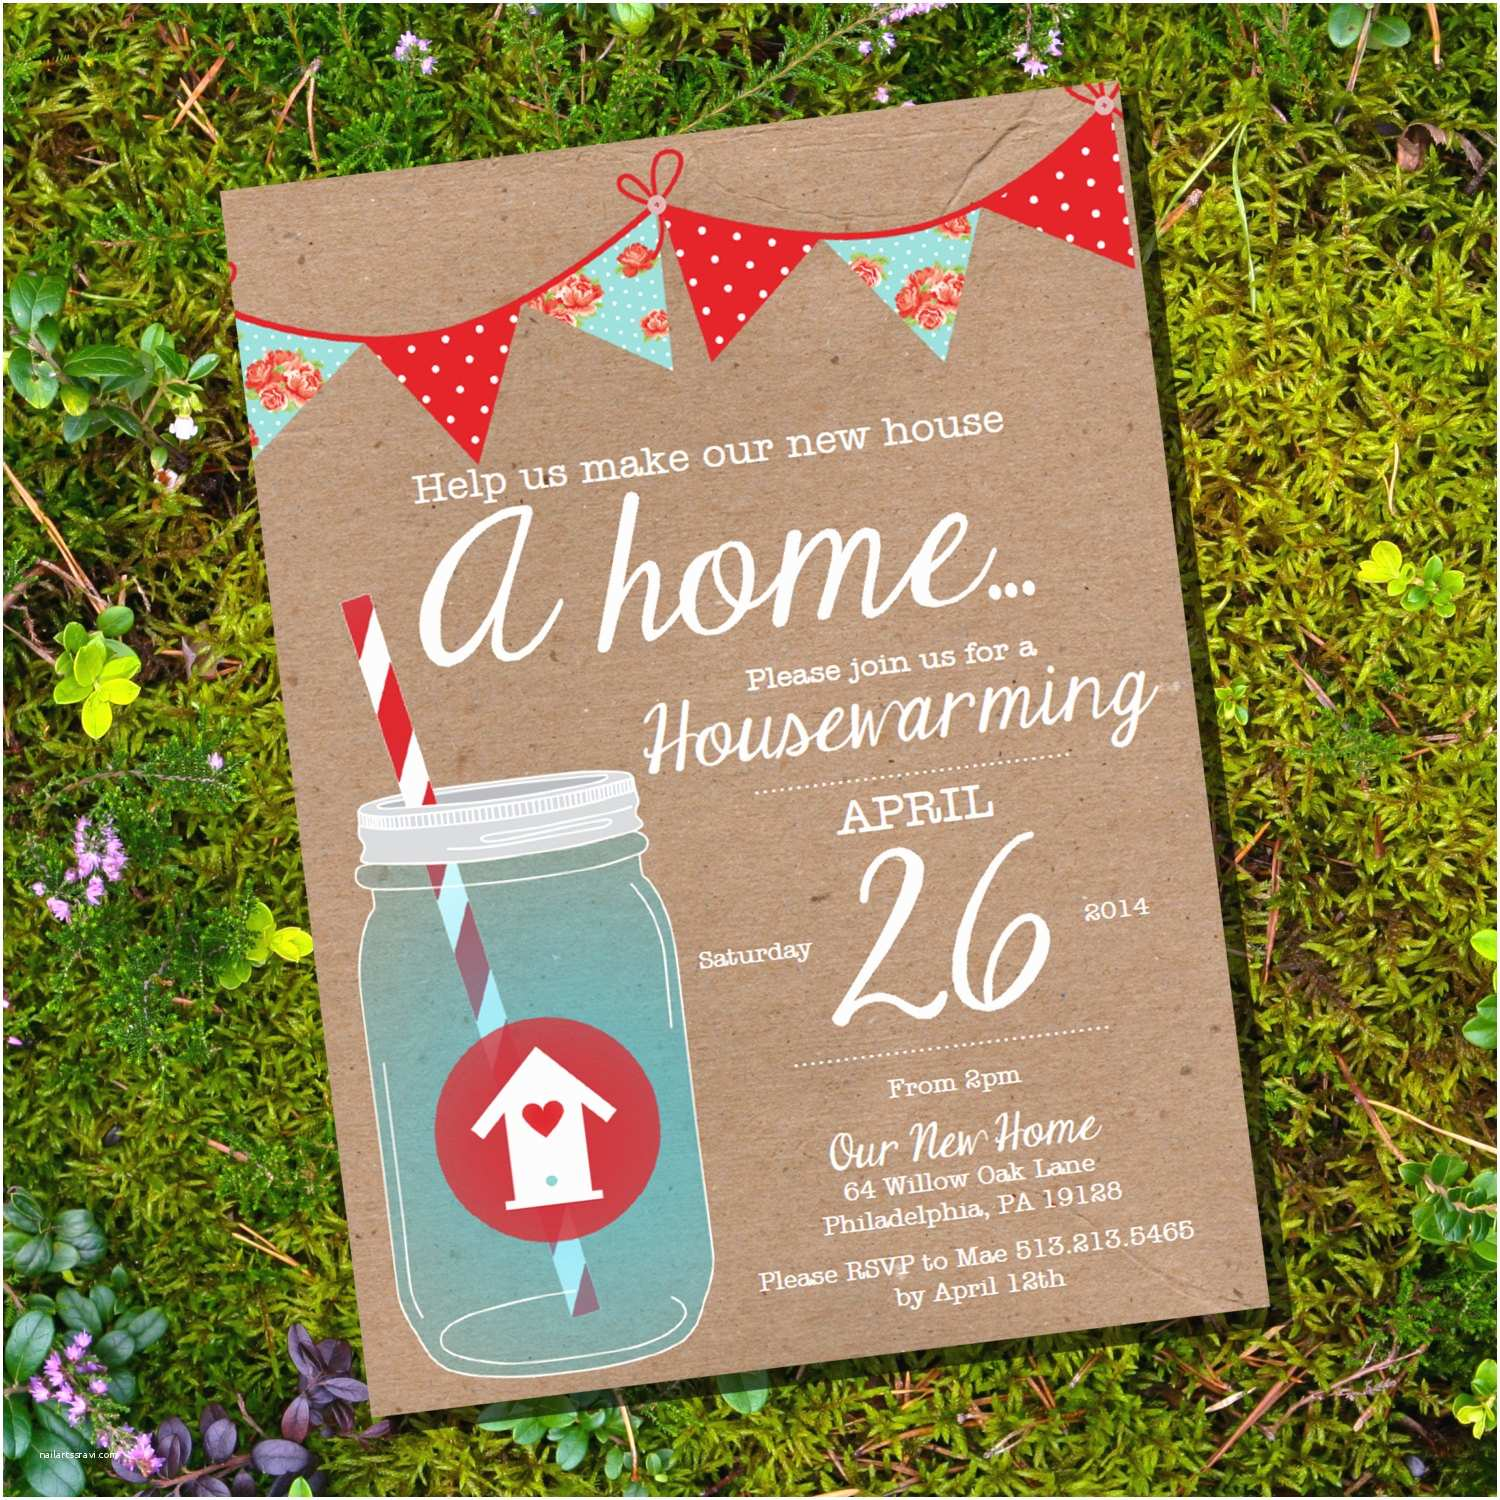 Housewarming Party Invites Shabby Chic Housewarming Invitation Housewarming Party